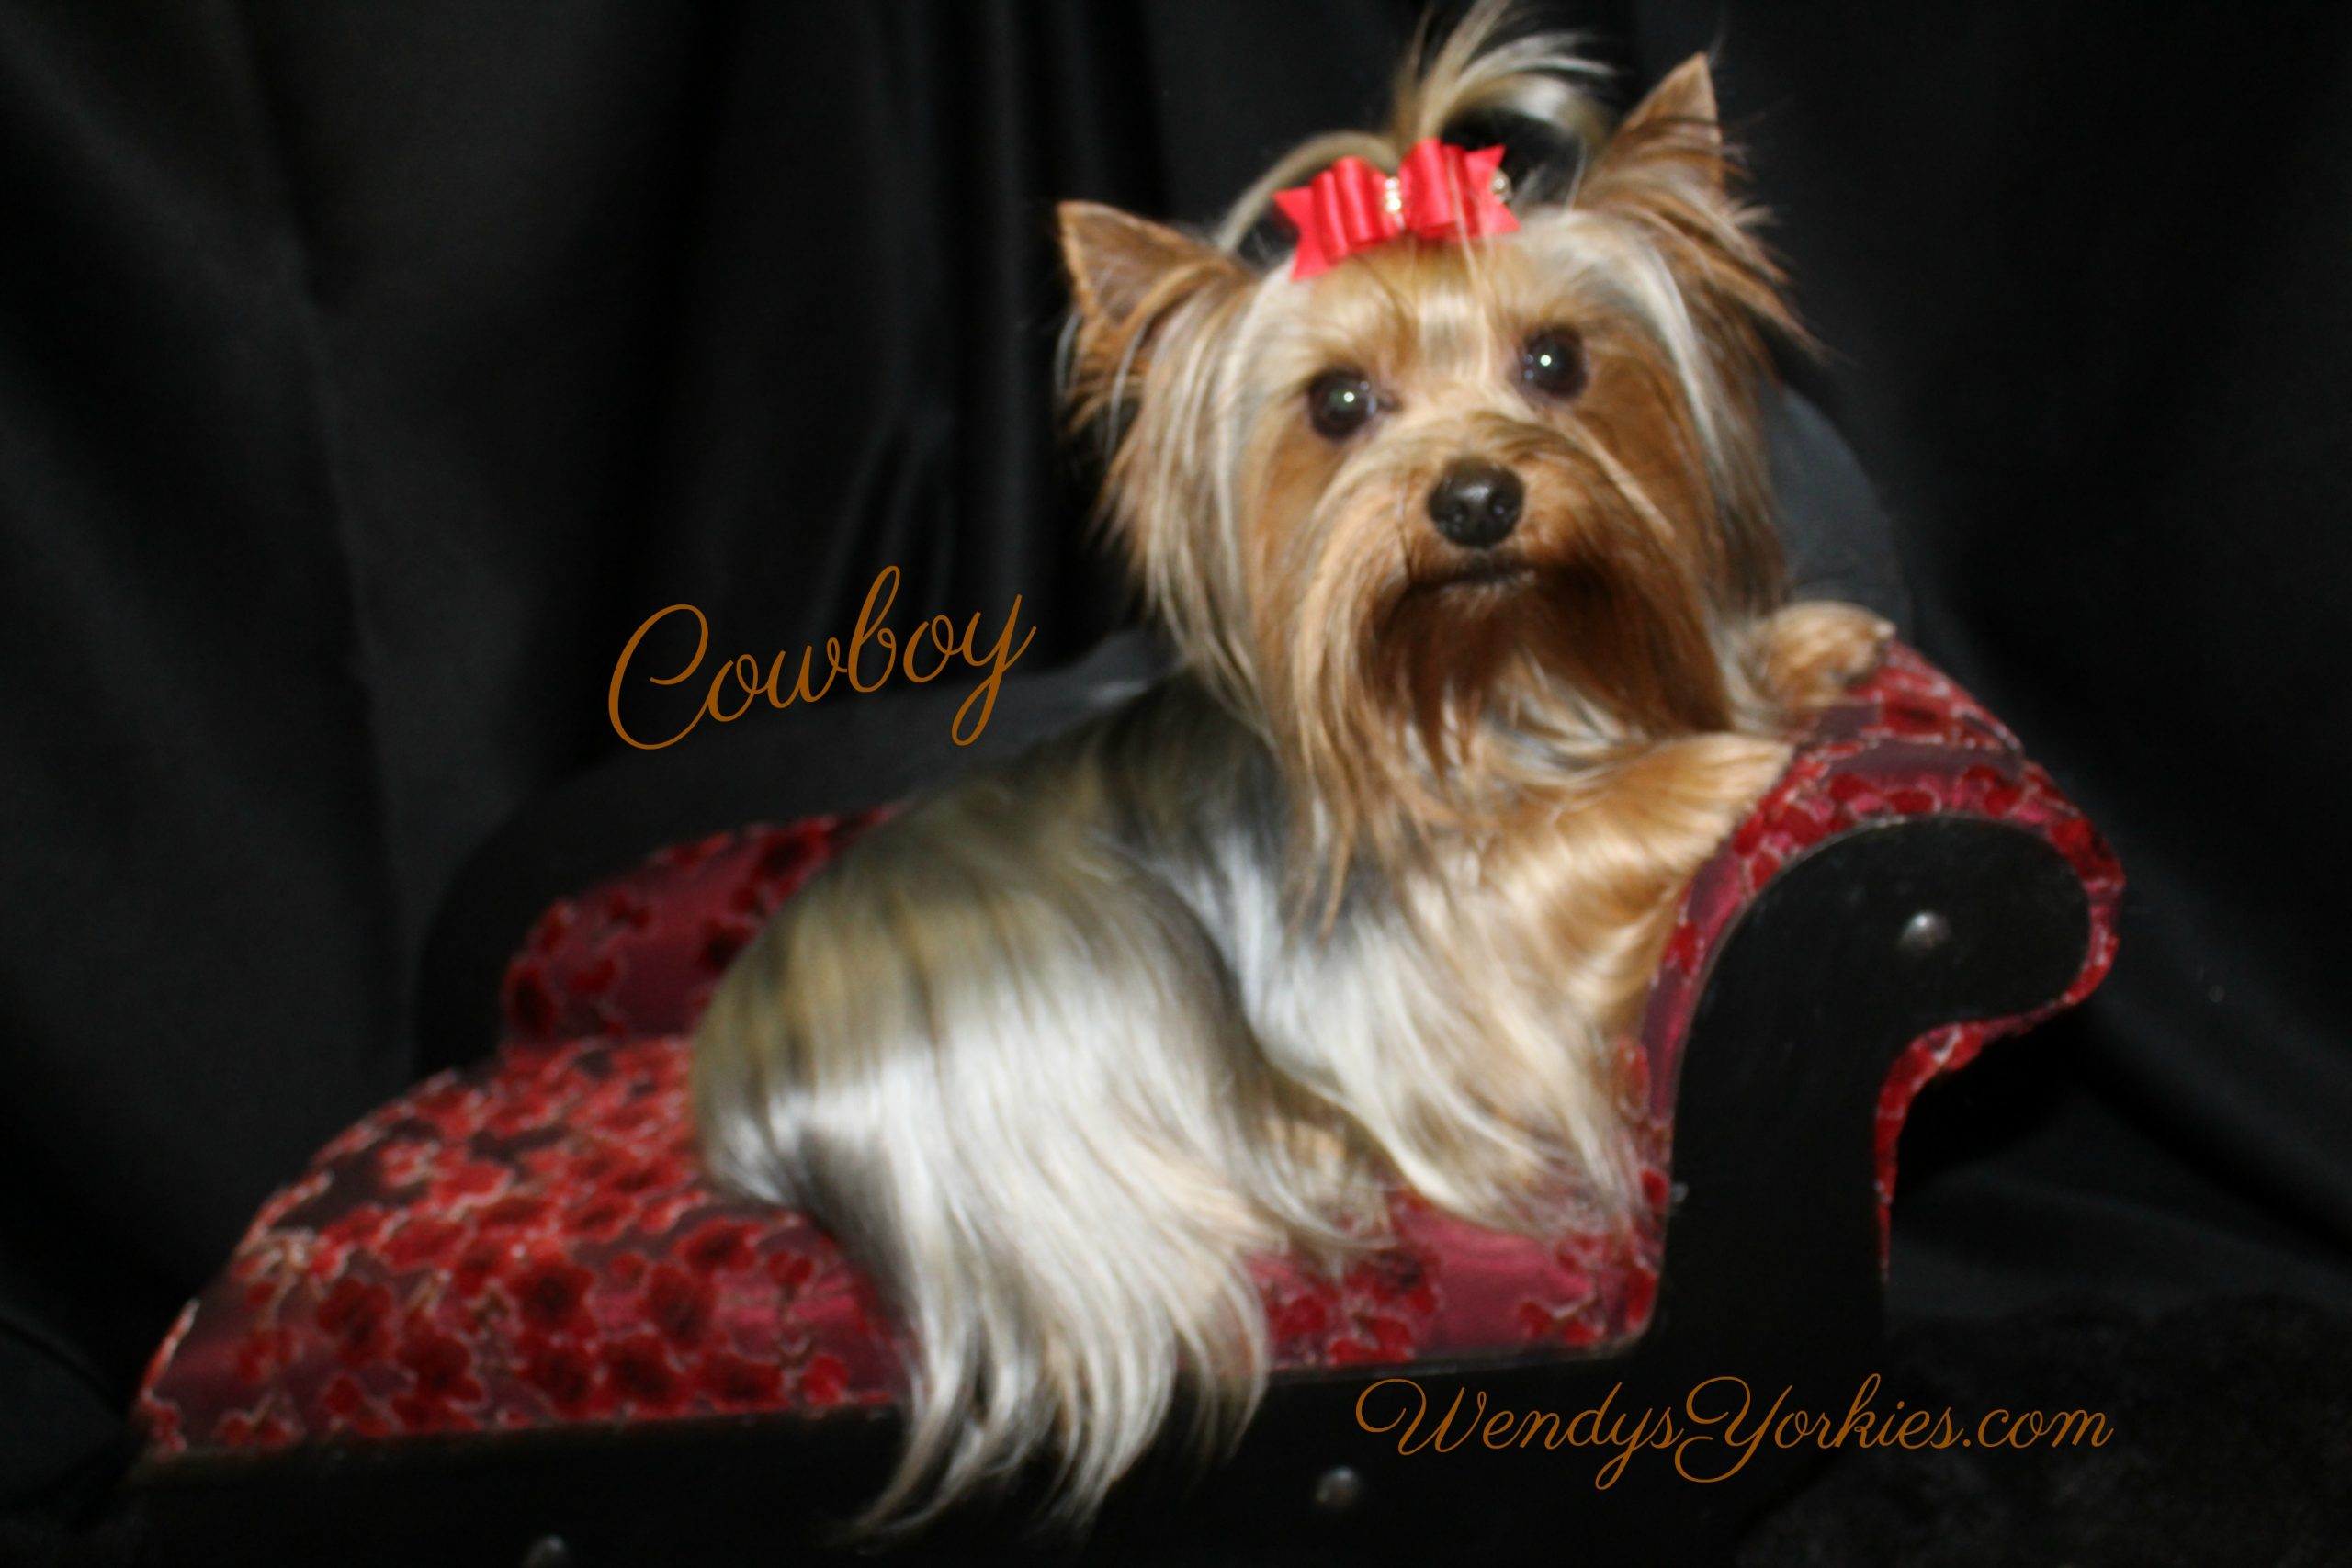 Tiny Male Yorkie, Cowboy, WendysYorkies.com